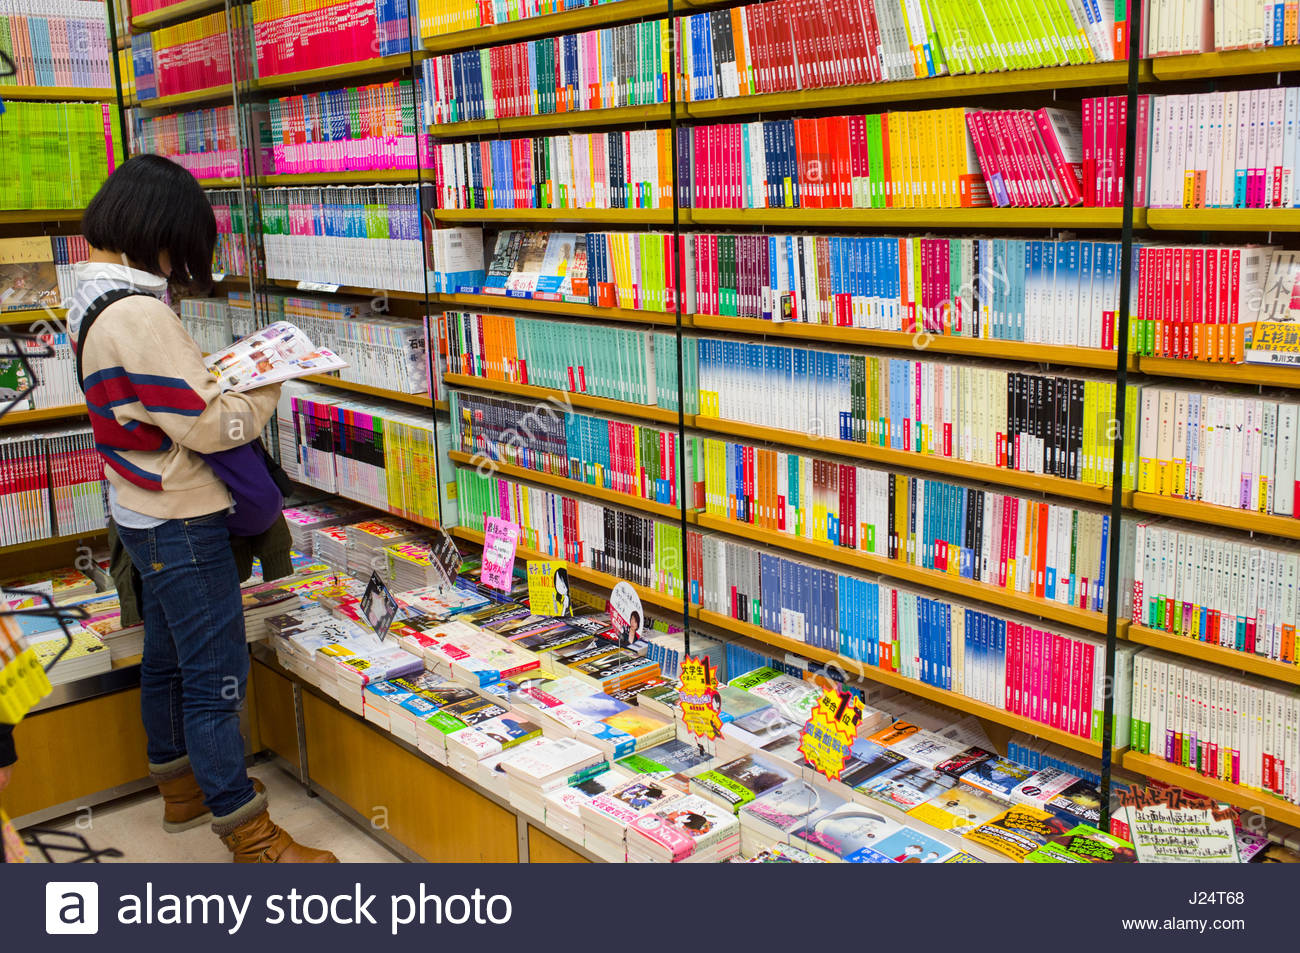 Girl reading Japanese book inside bookstore, Narita International Airport, NRT, Narita-shi, Chiba, Honshu, Japan - Stock Image